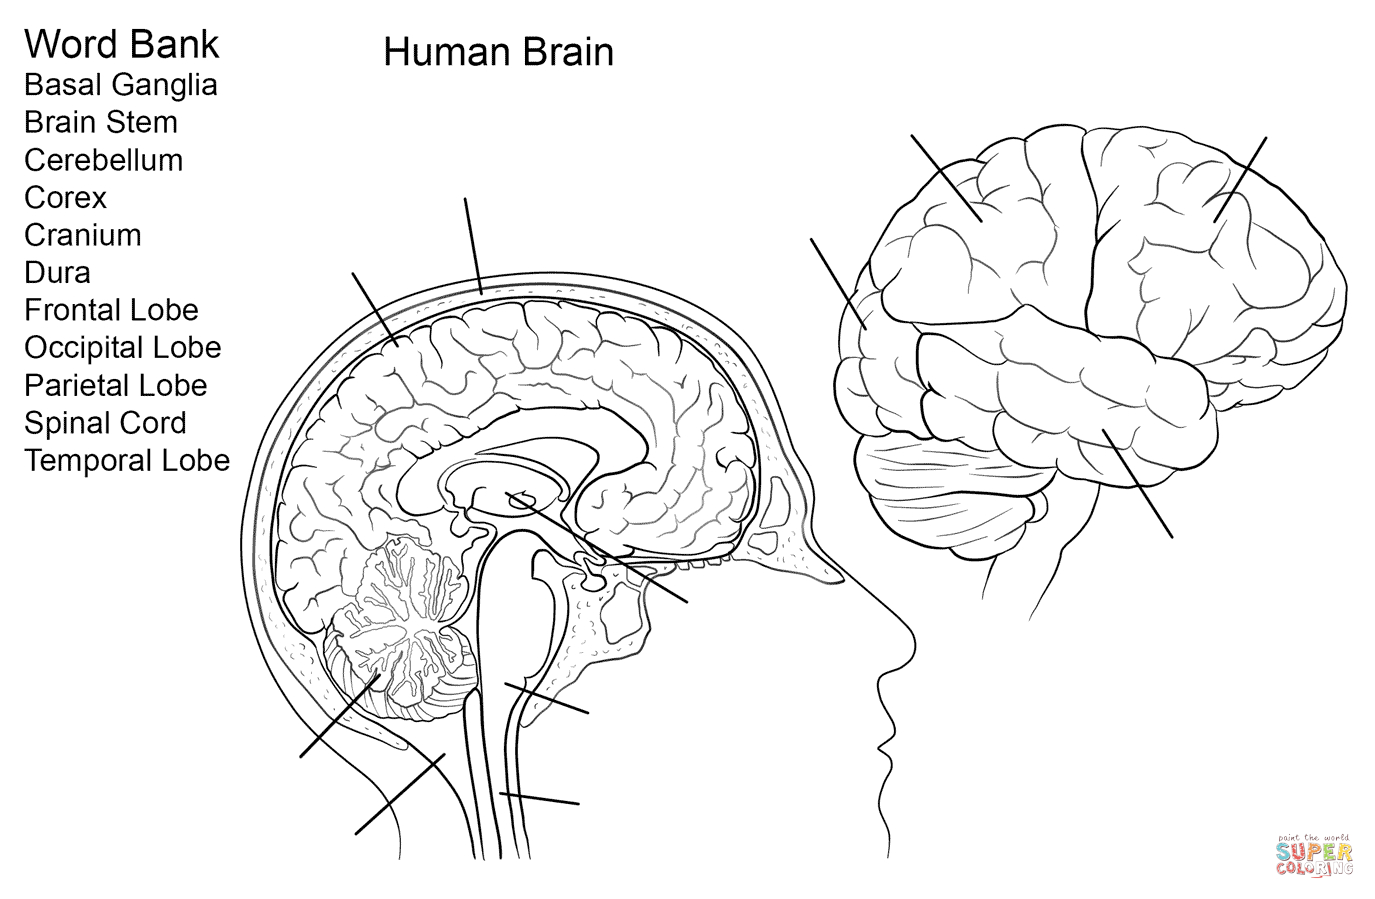 Human Brain Worksheet Coloring Page | Free Printable Coloring - Free Printable Human Anatomy Coloring Pages